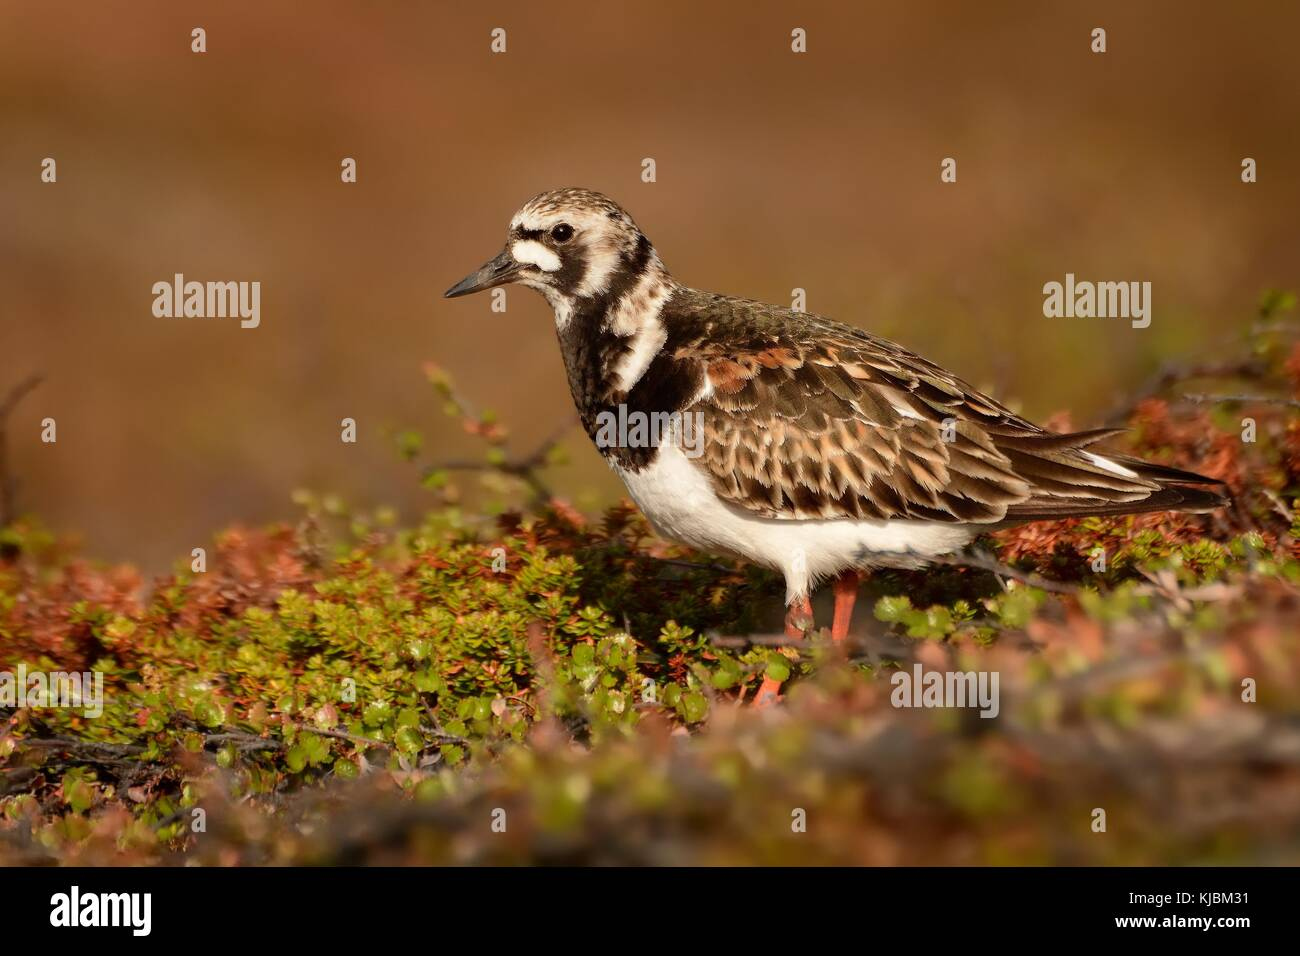 Ruddy Turnstone in tundra in the evening. - Stock Image